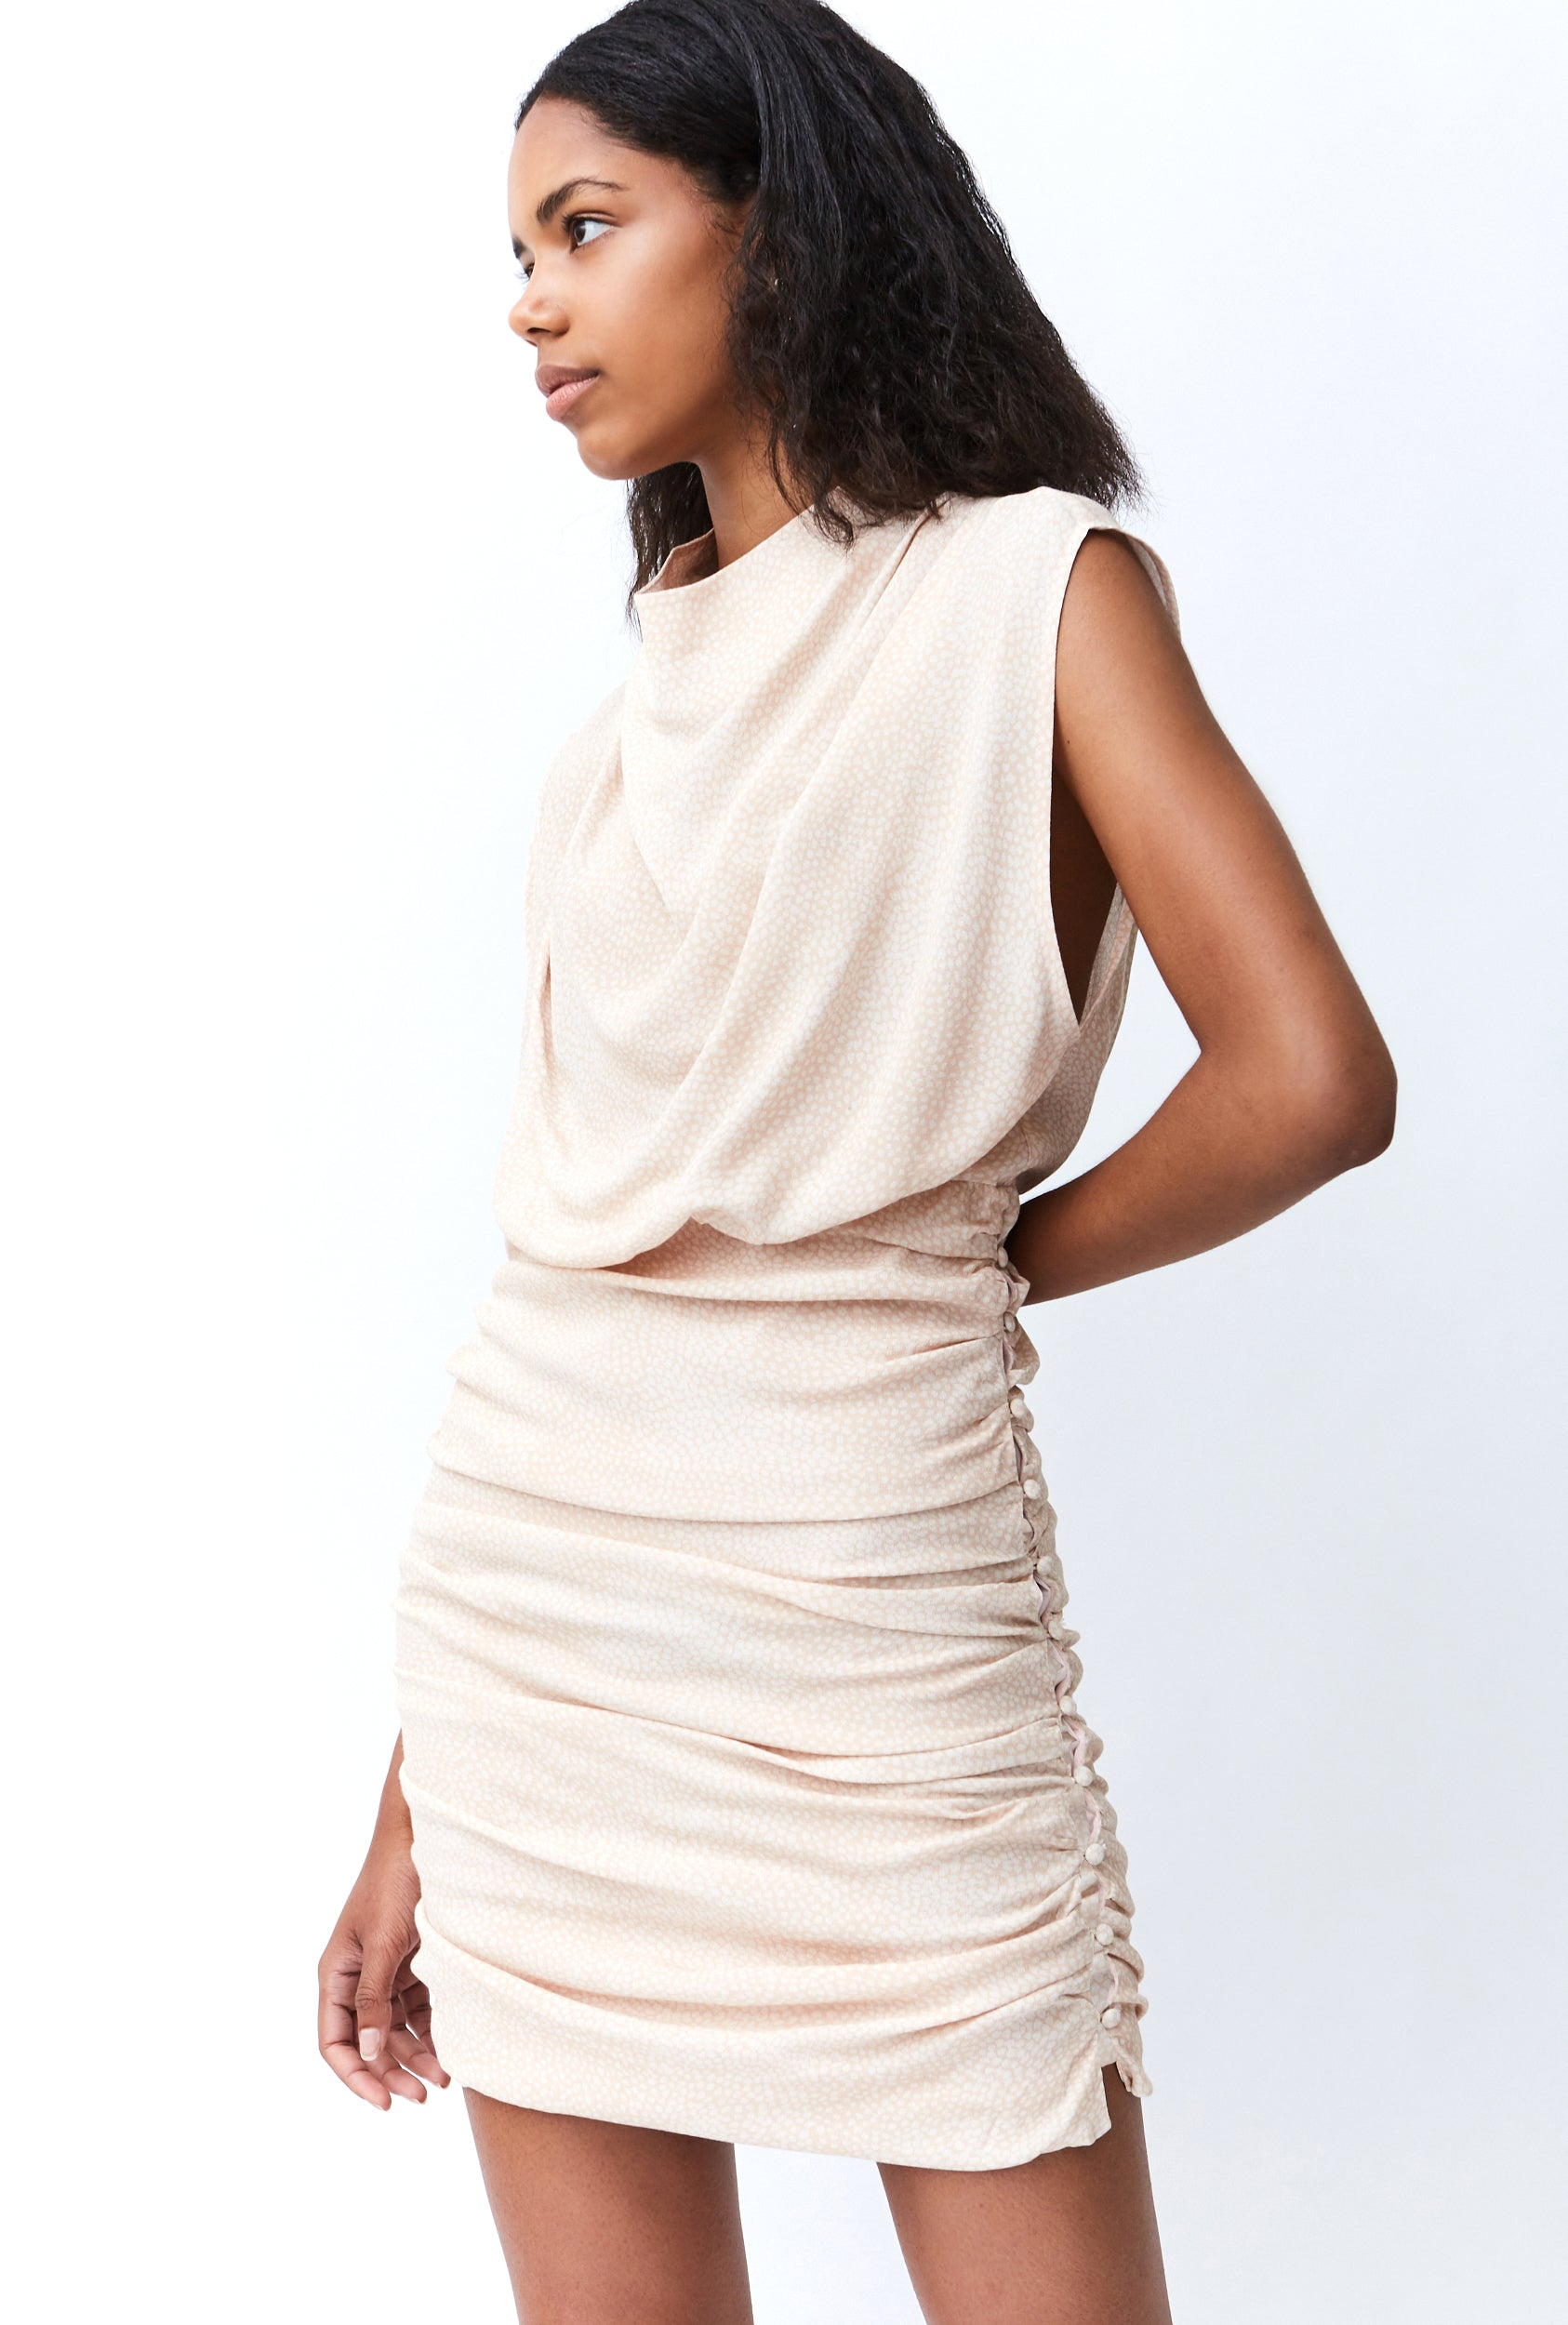 THE HUNTED HIGH NECK DRESS | TAN ANIMAL